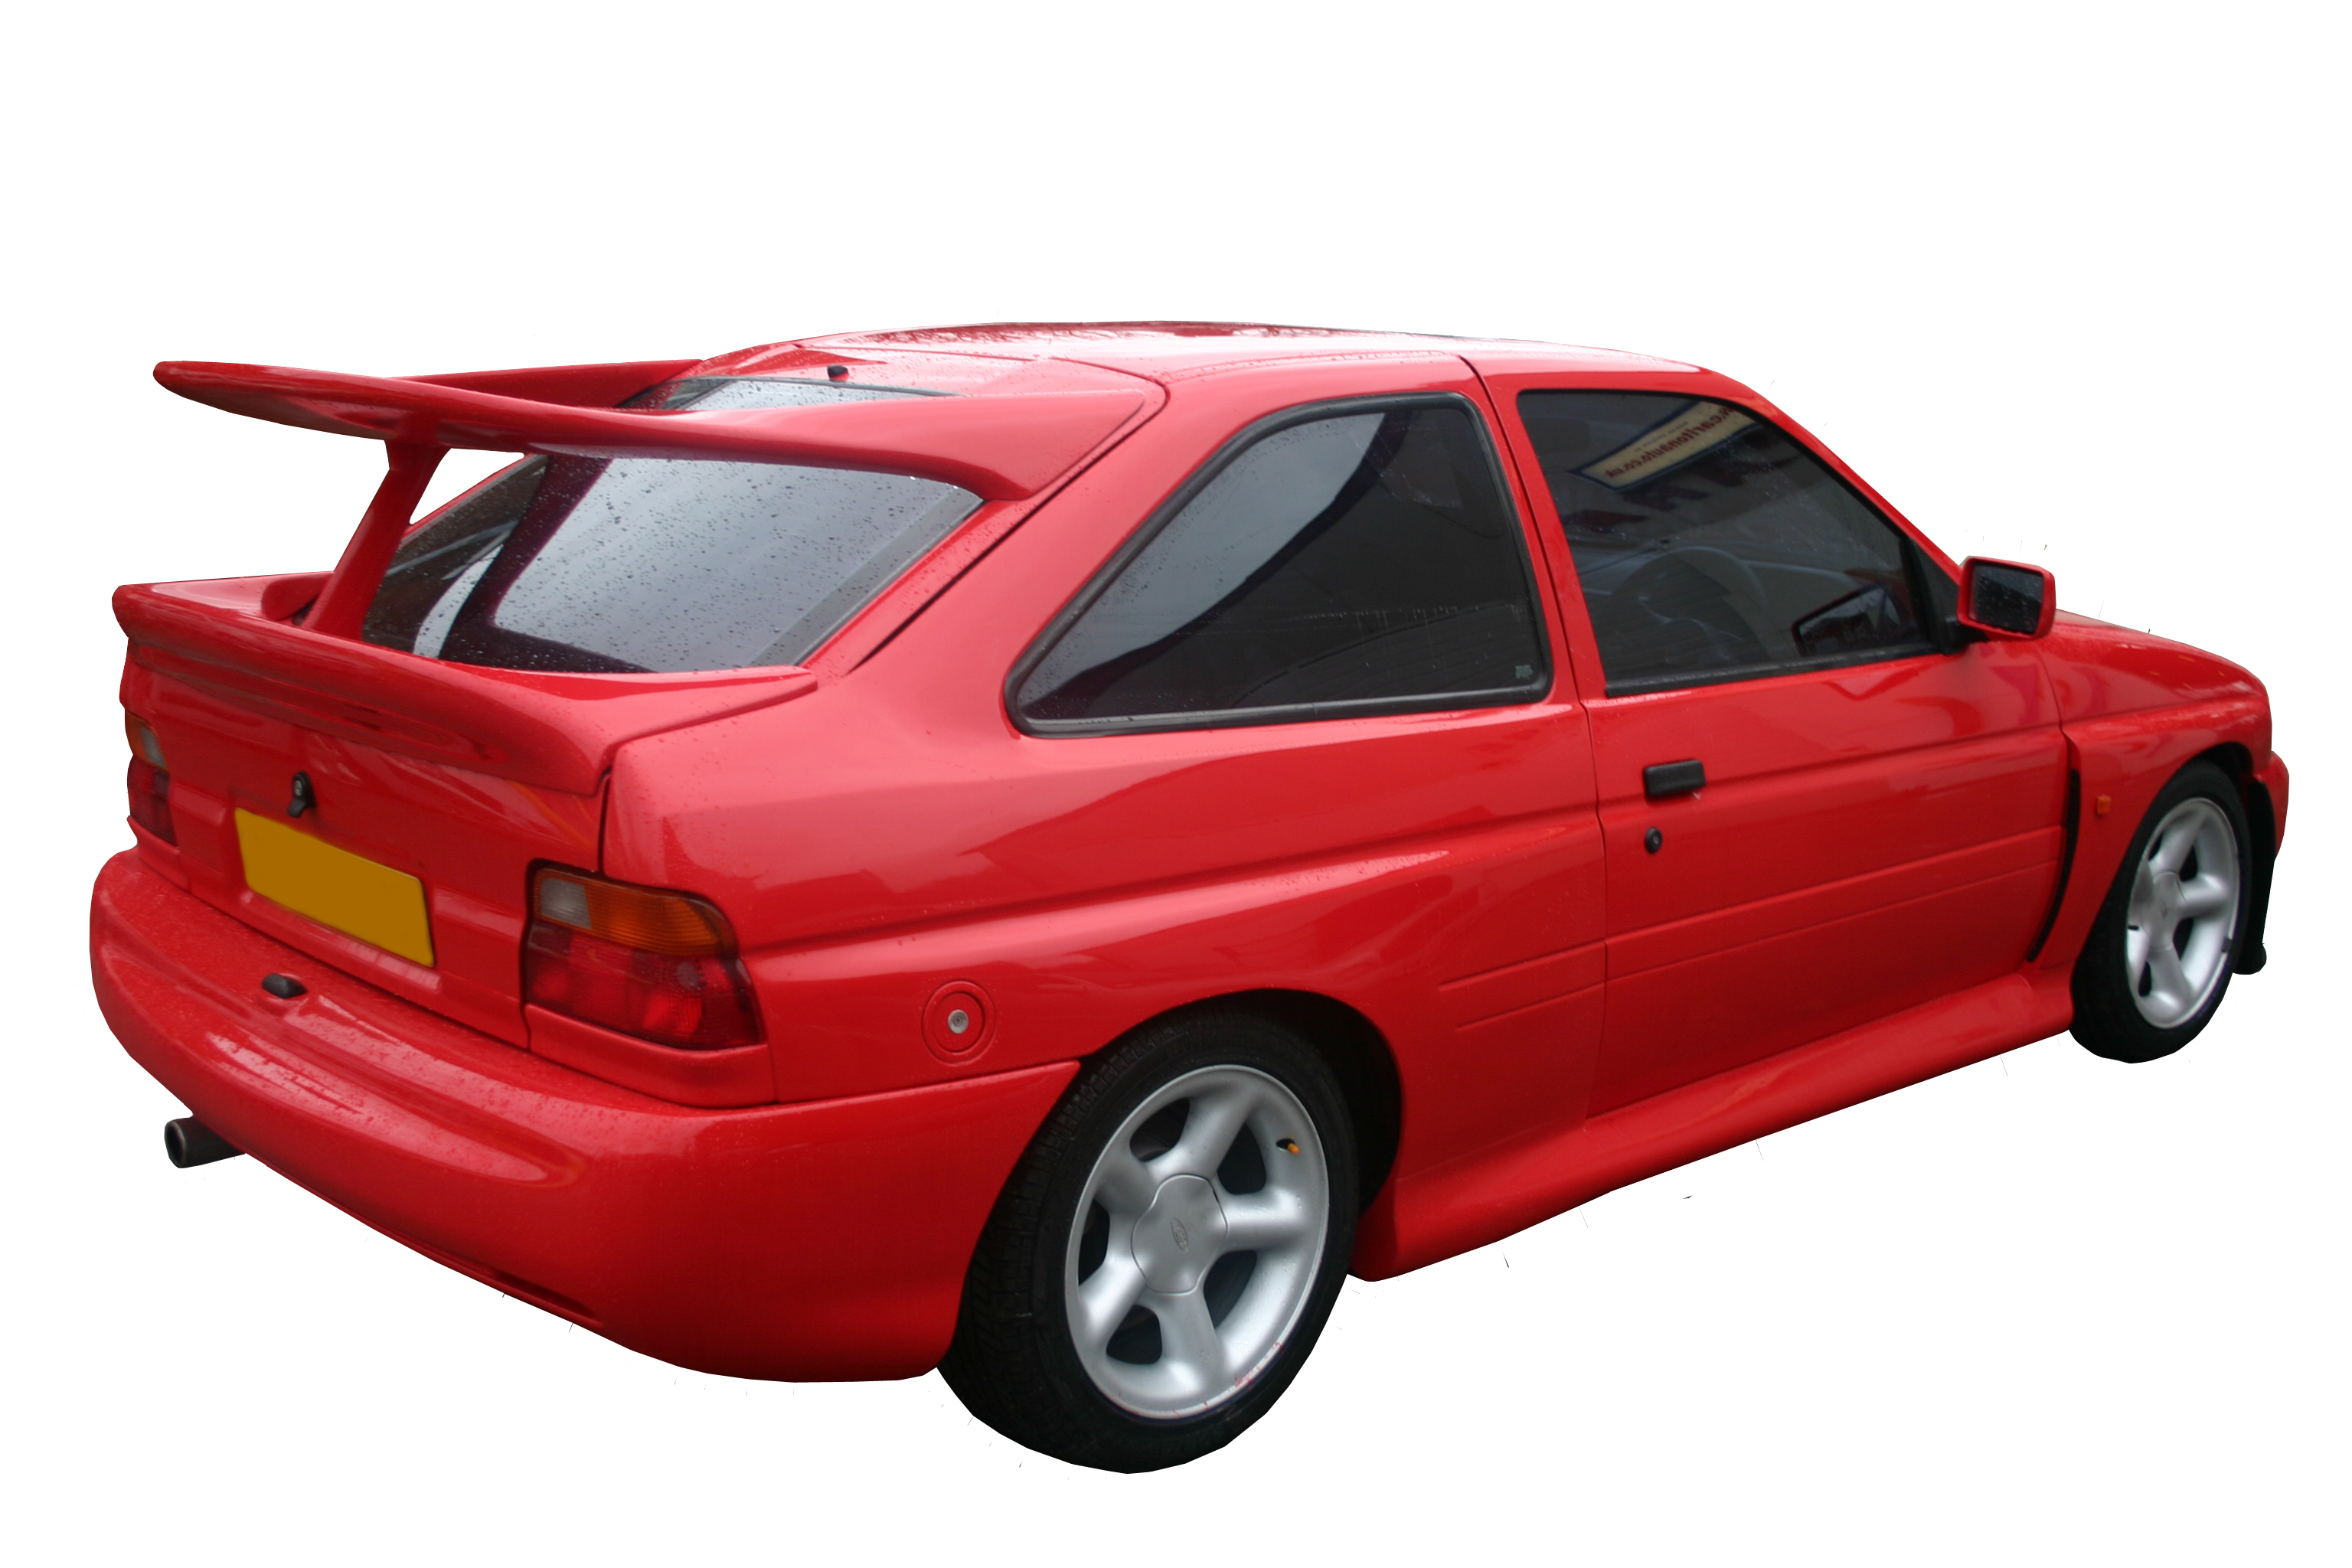 ford escort cosworth upper spoiler 1990 2000